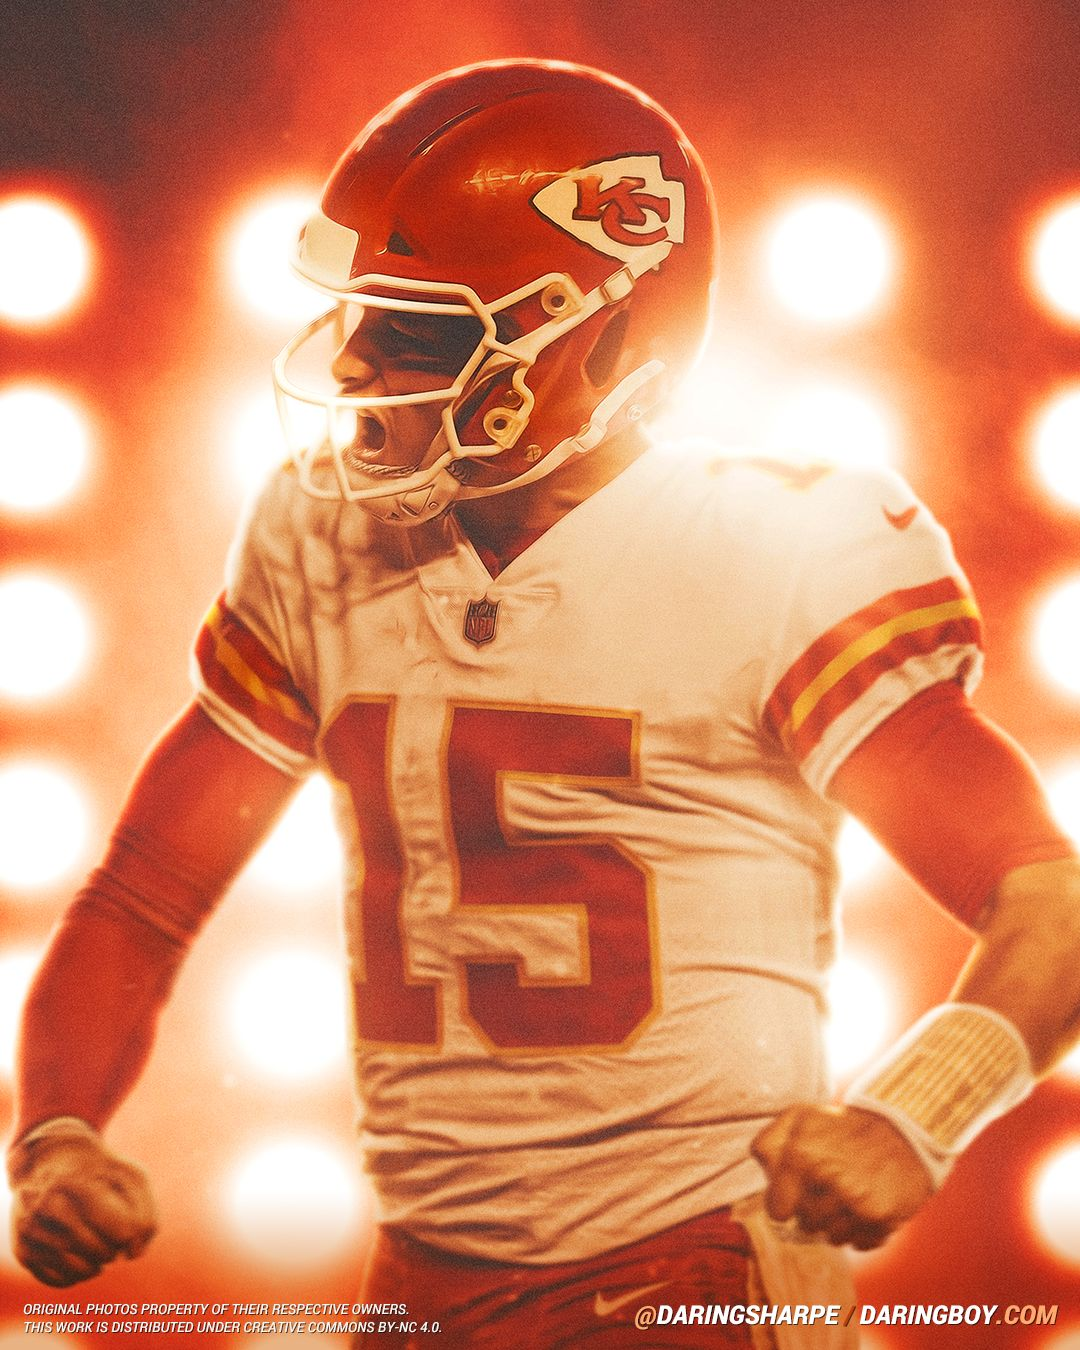 Patrick Mahomes Kansas City Chiefs Kansas City Chiefs Kc Chiefs Football Kansas City Chiefs Football